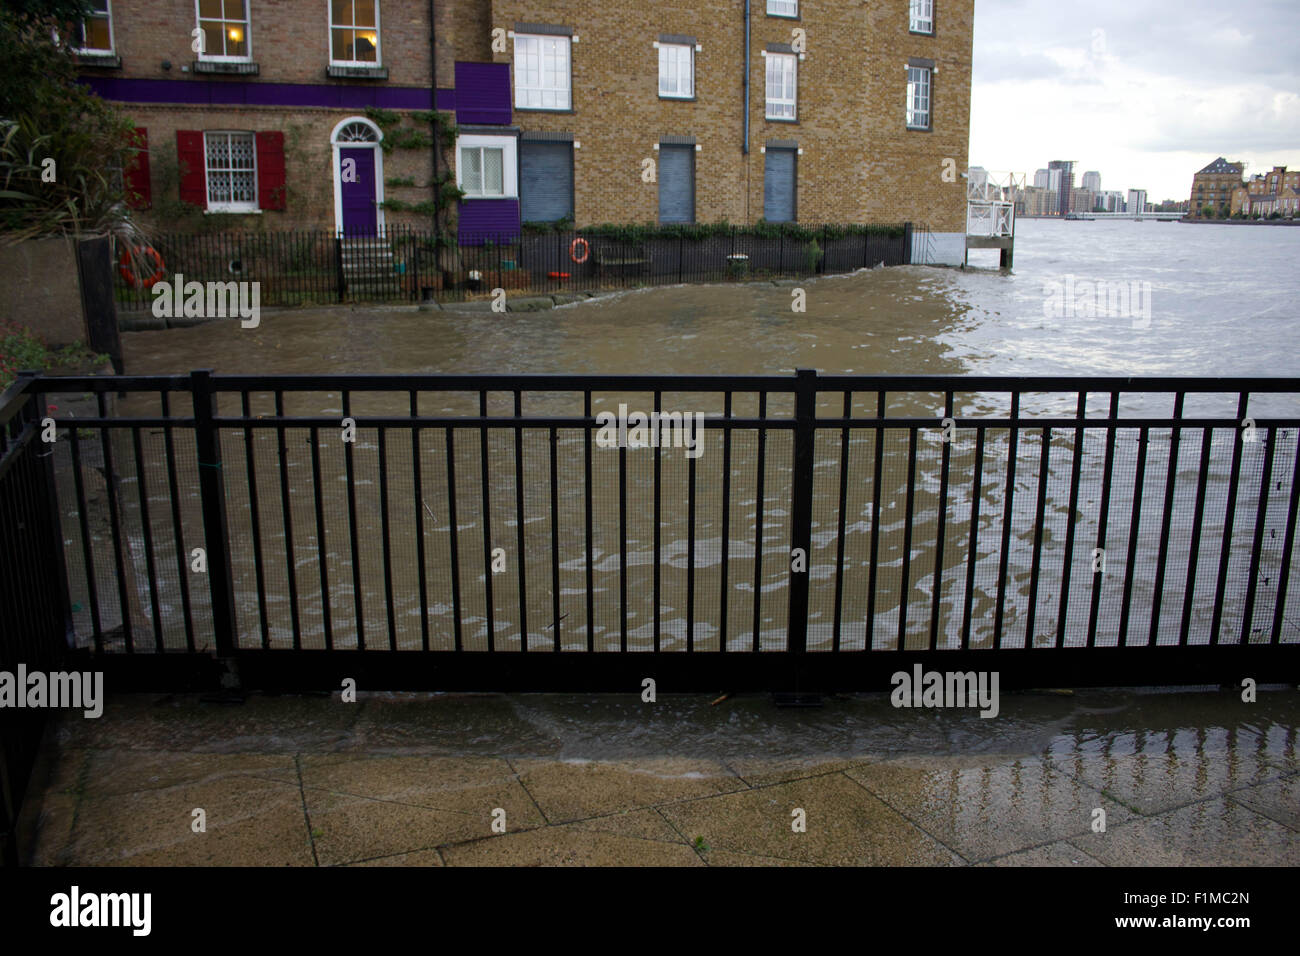 London, UK. 03rd Sep, 2015. A high tide on London's River Thames swamps walkways and edges close to doors of - Stock Image